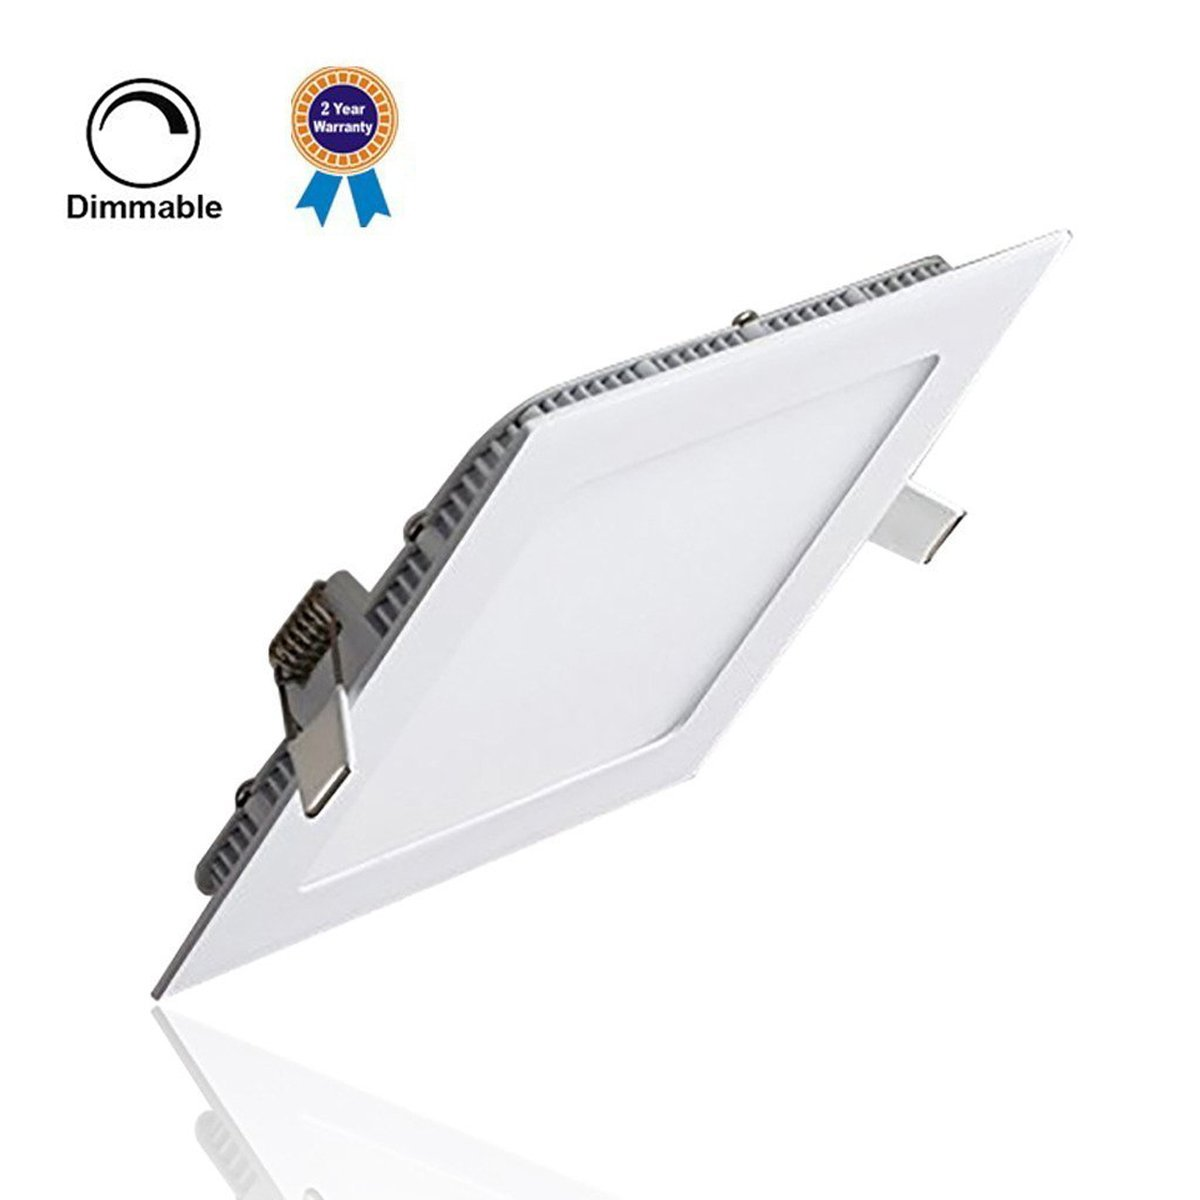 LED Panel Light Lamp Dimmable, szwintec 18W Ultra-thin Square Recessed Ceiling Light, 120W Incandescent Equivalent, 1440lm, Warm White 3000K, Cut Hole 8.1 Inch, Downlight with 110V LED Driver